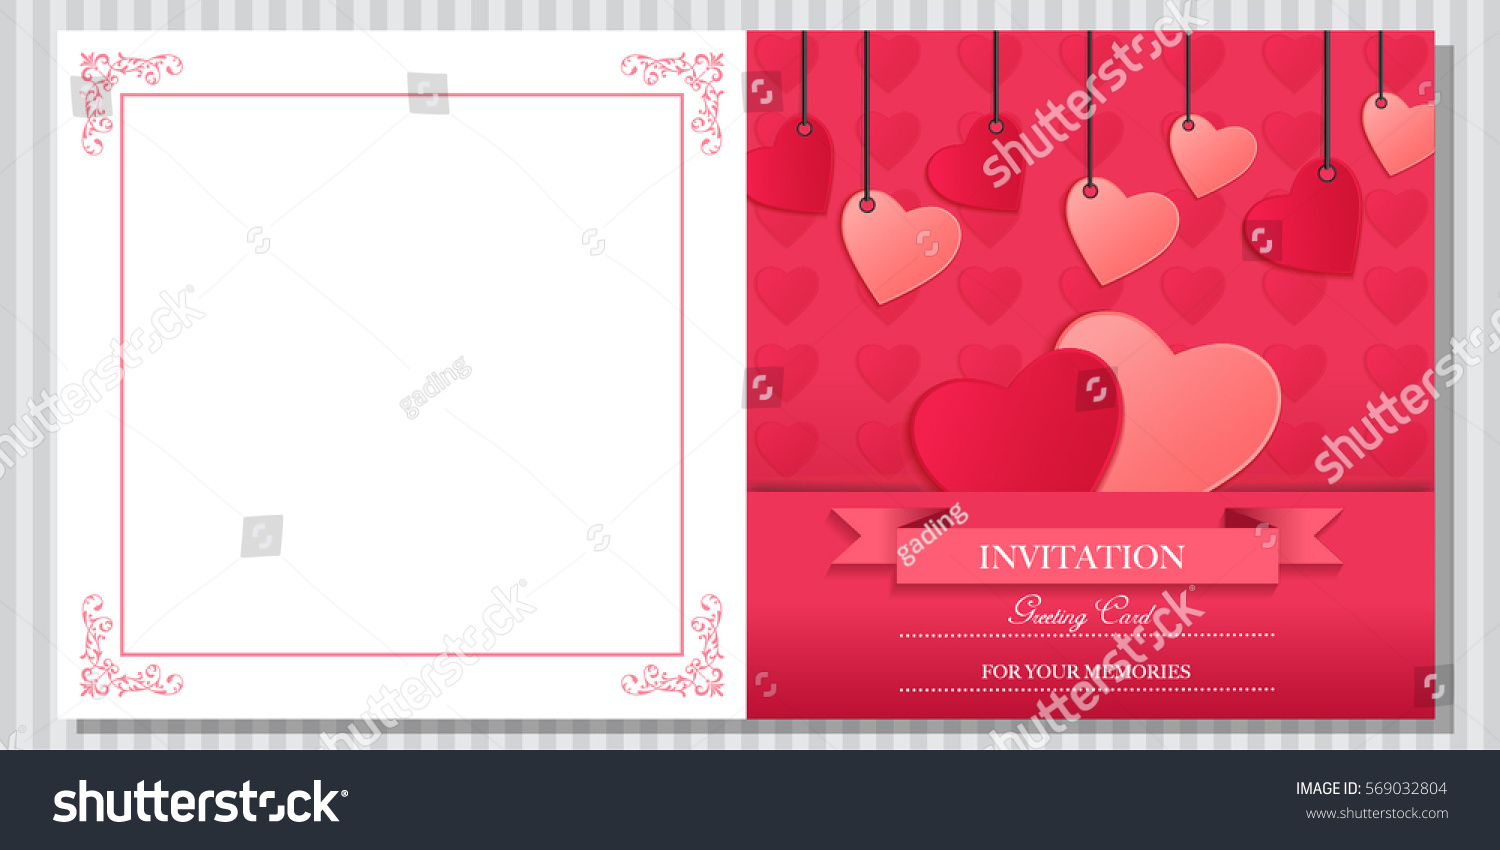 Valentines Wedding Invitation Card Editable Font Stock Vector ...